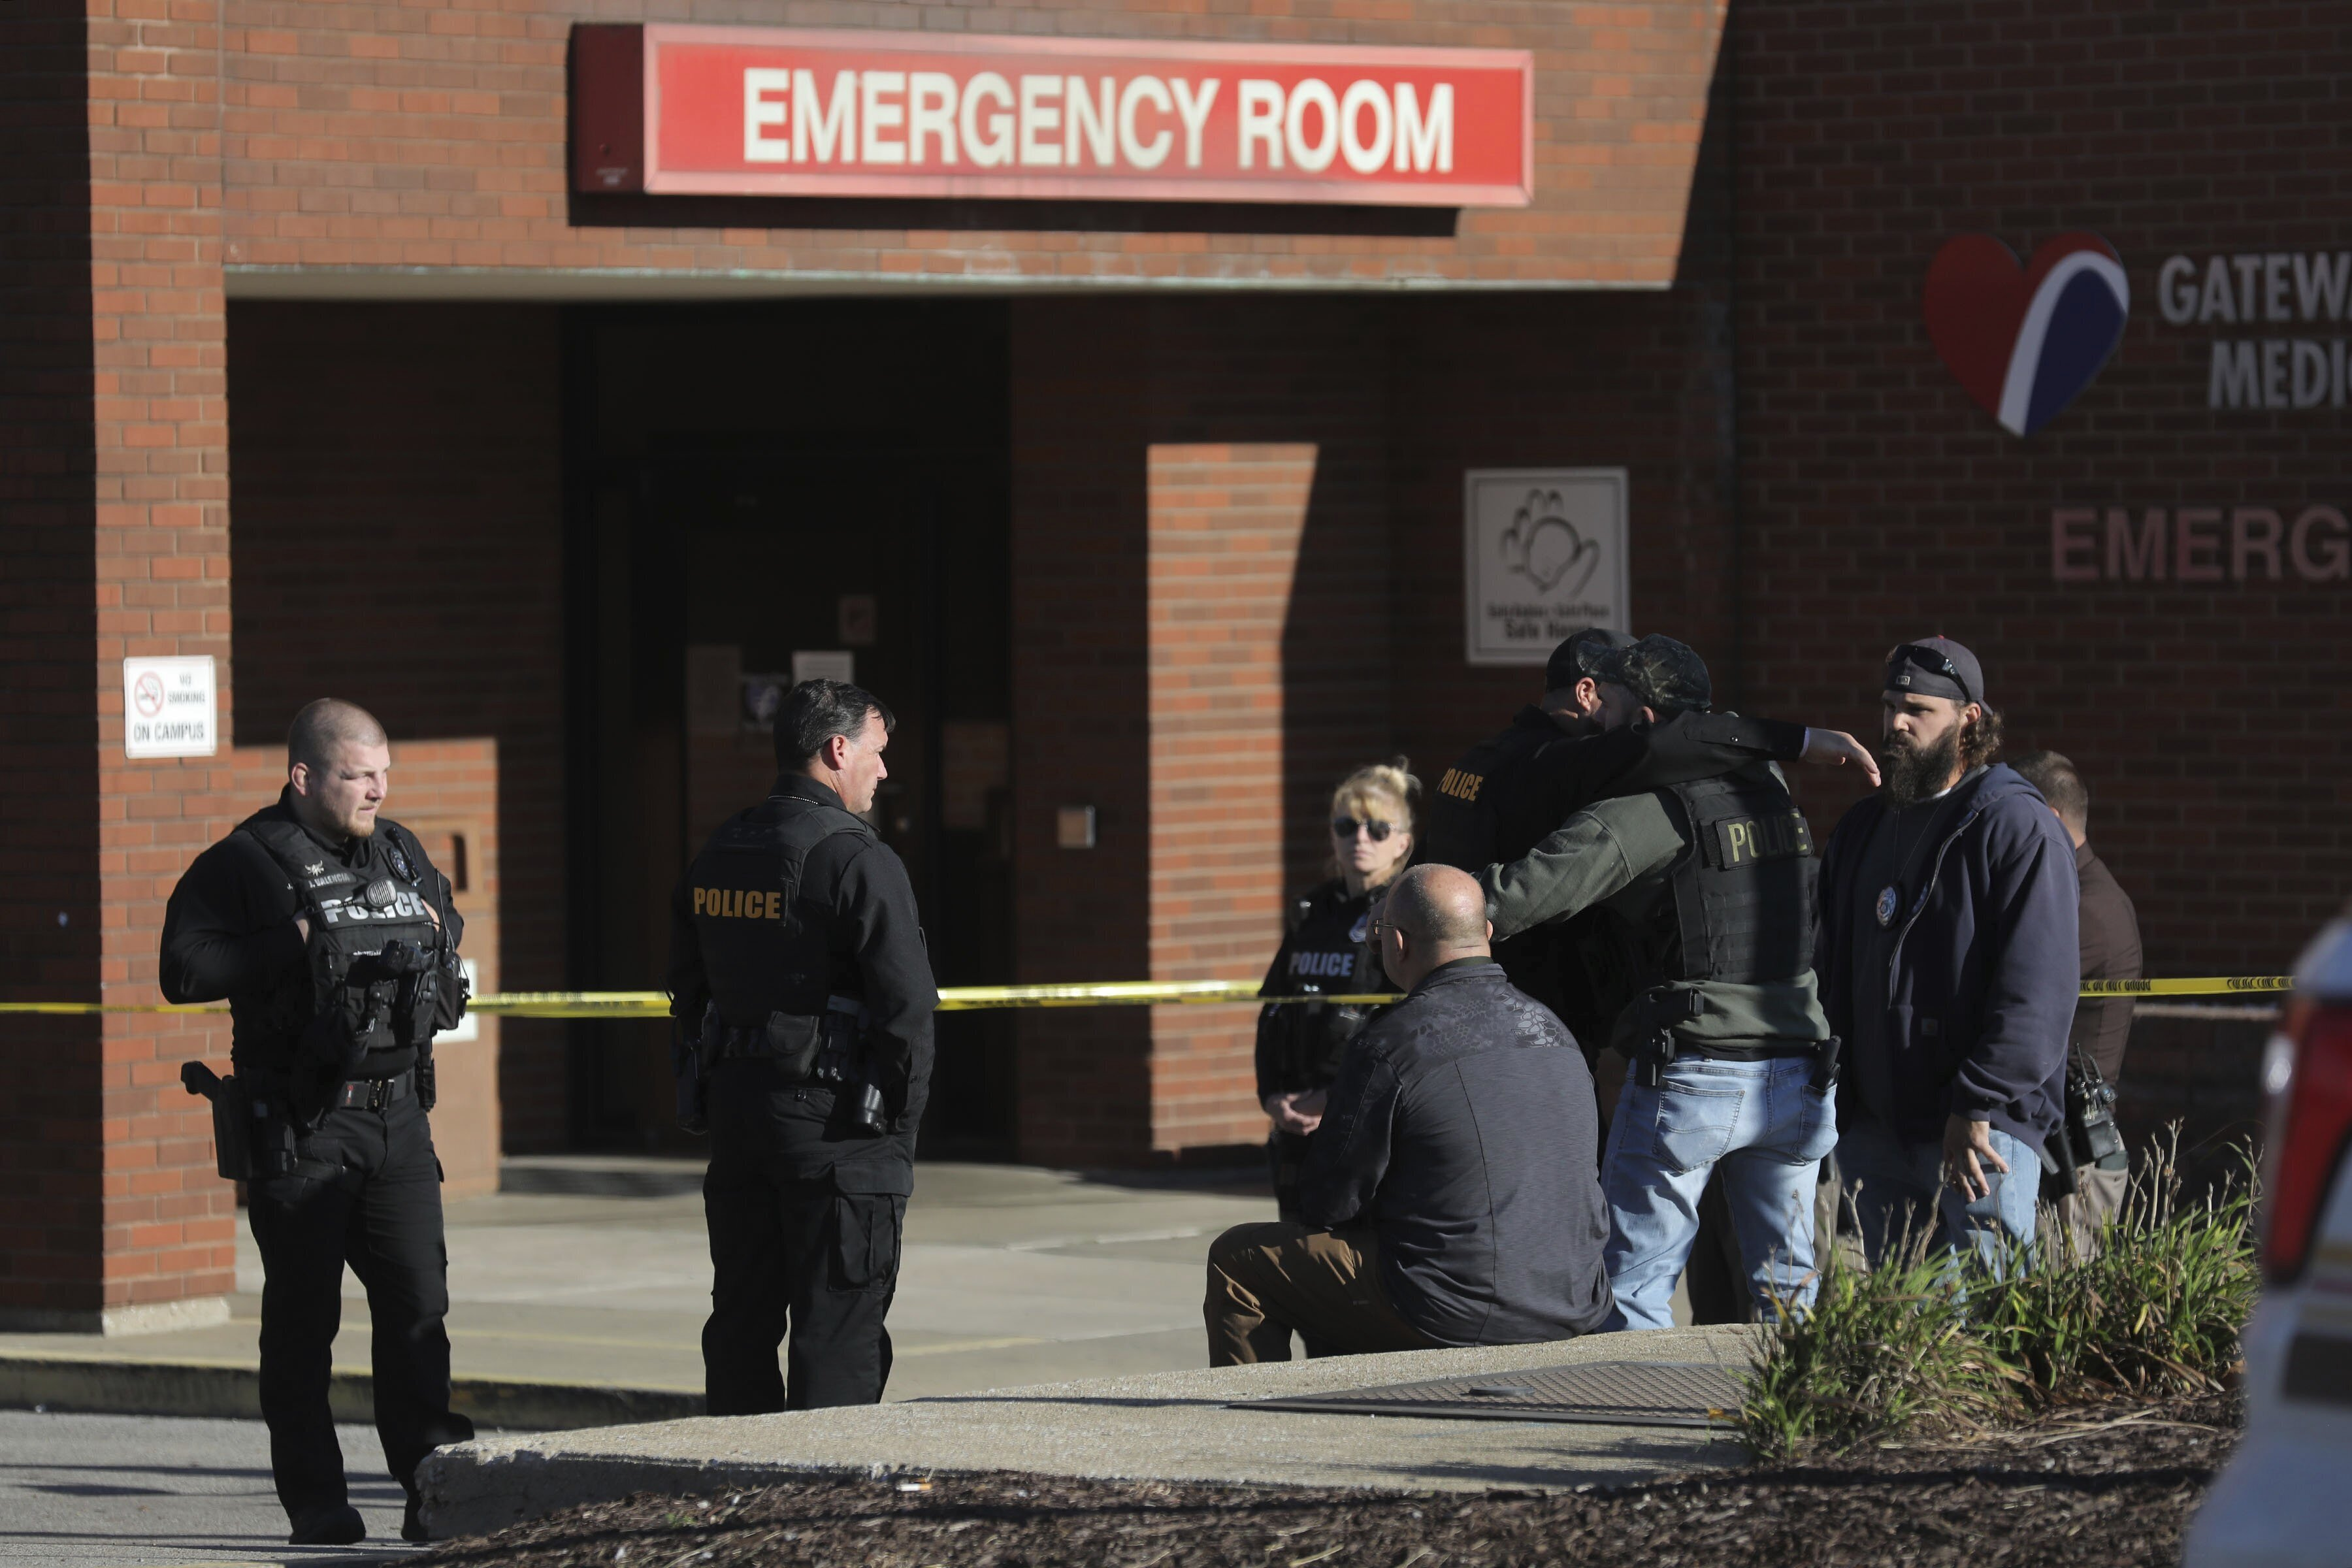 Police officers embrace while waiting outside the emergency room at Gateway Medical Center in Granite City, Ill., on Tuesday, Oct. 26, 2021.